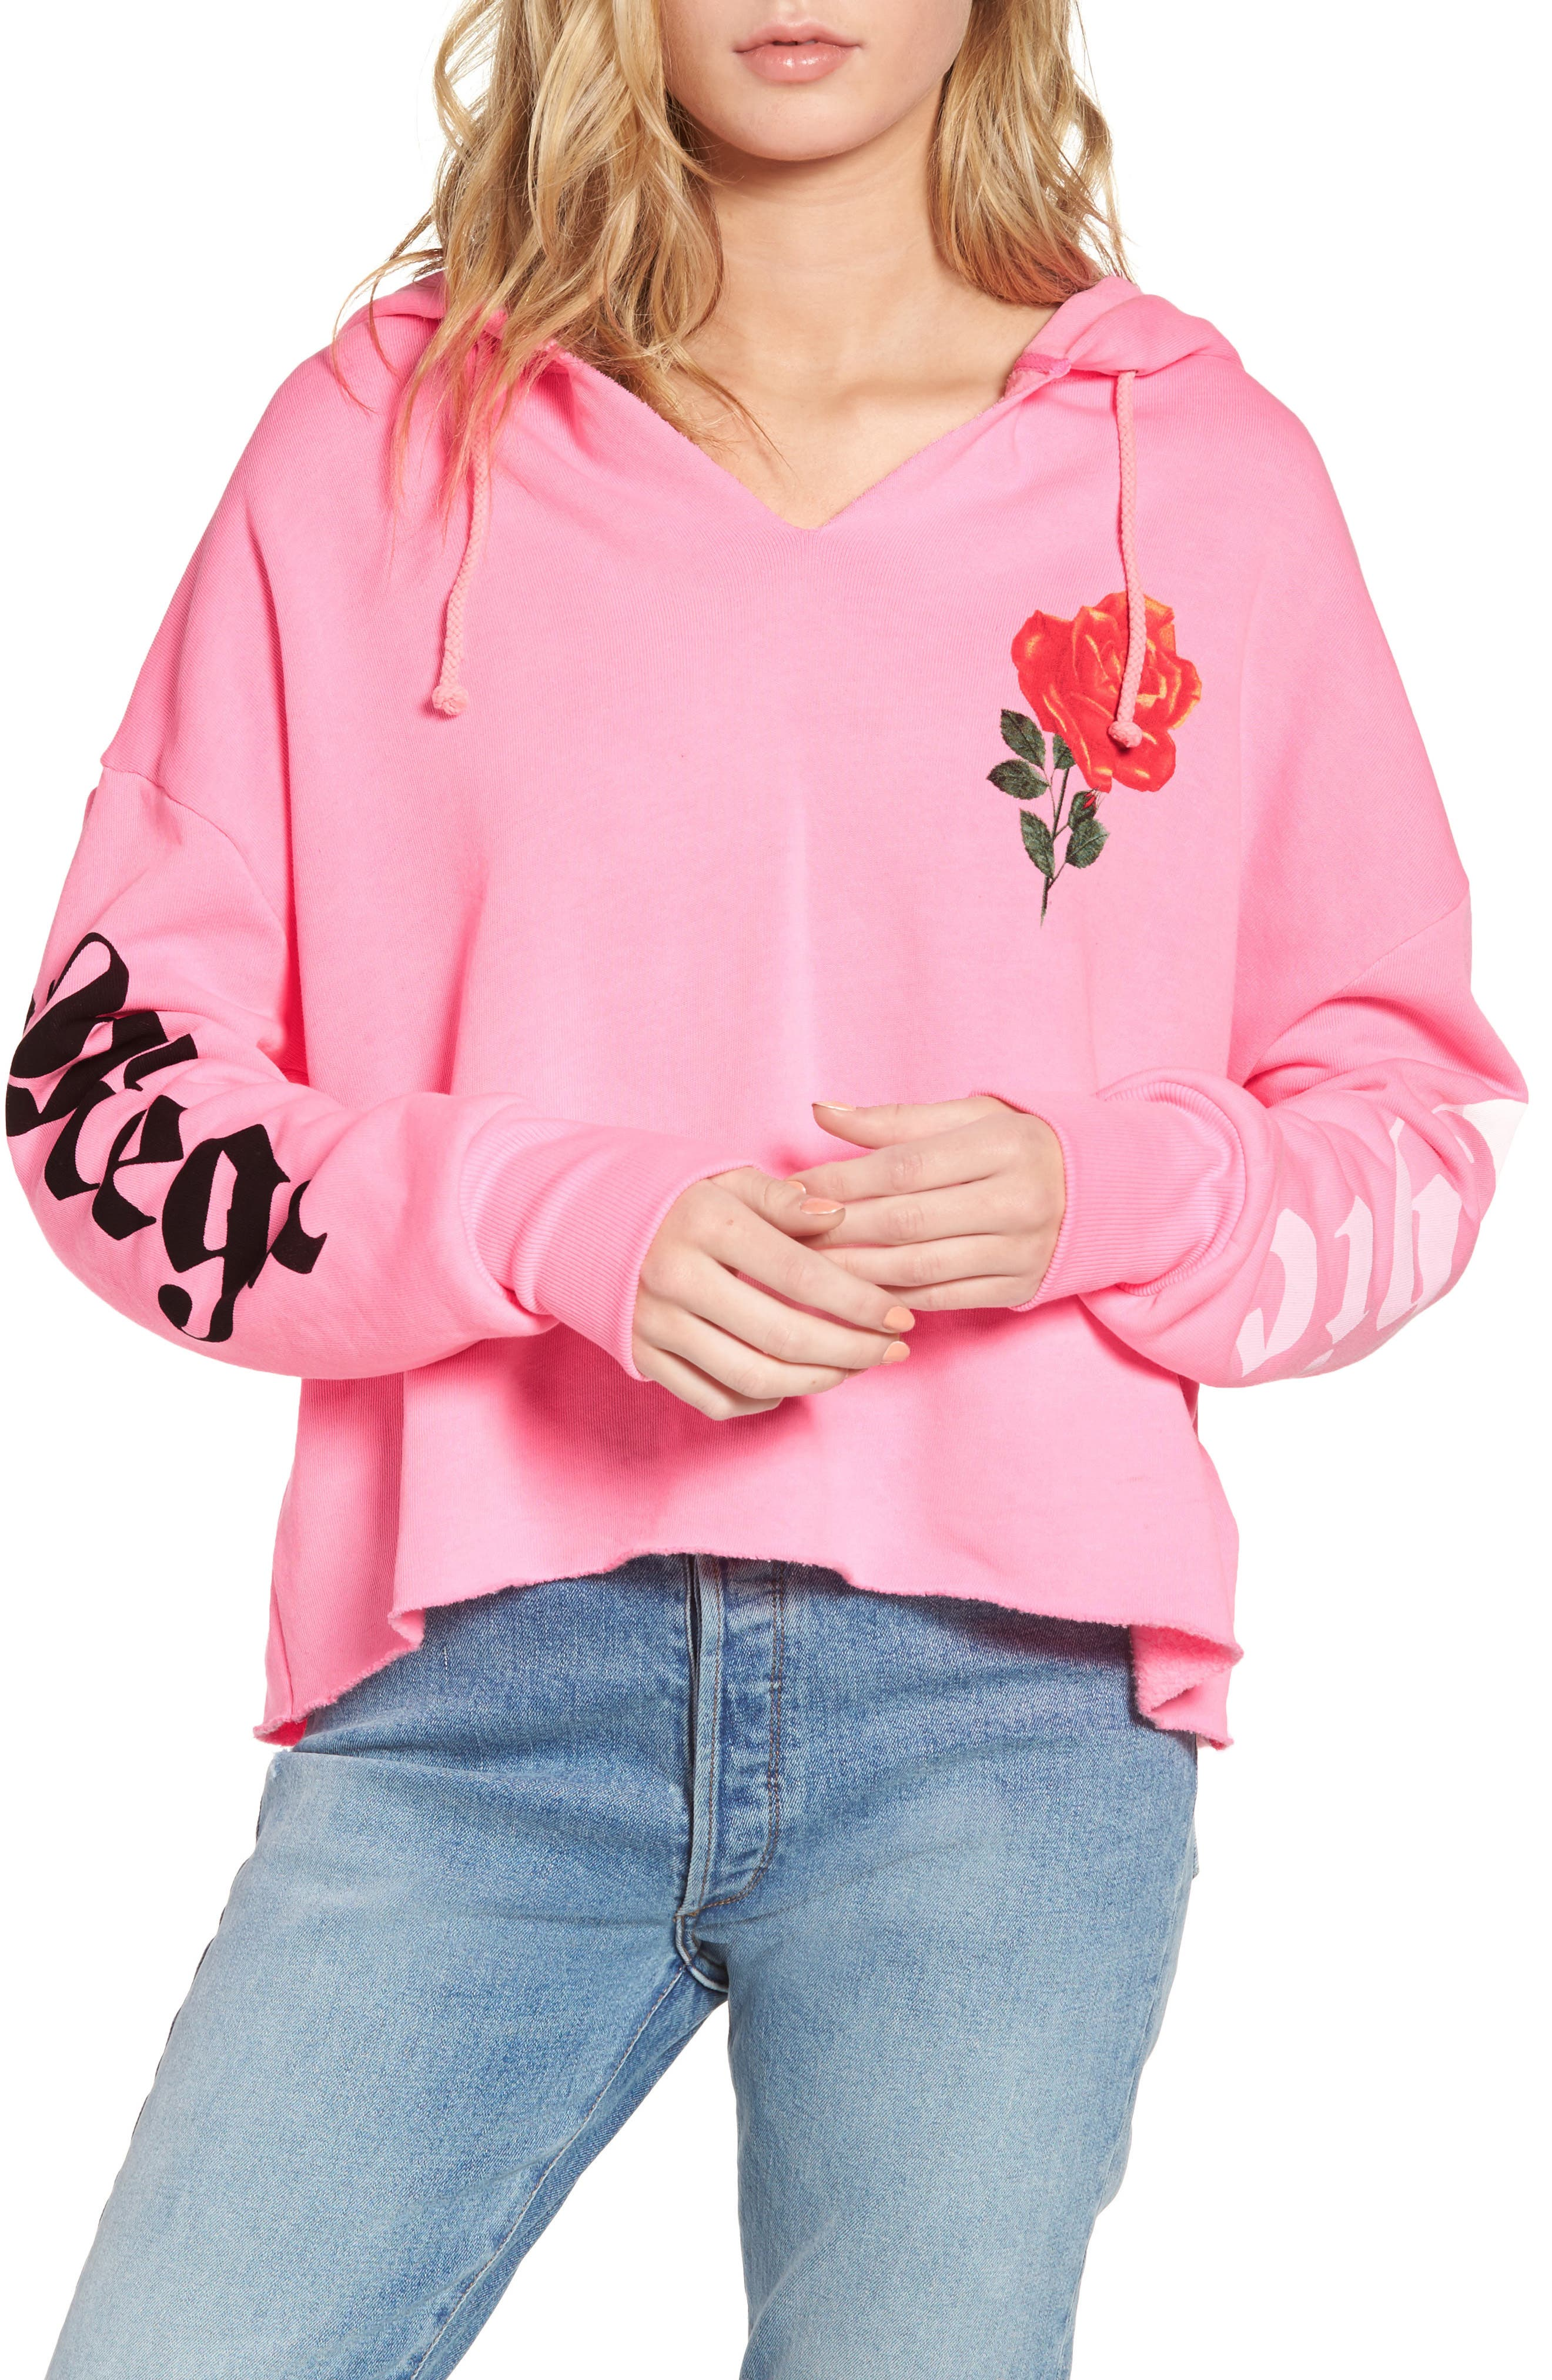 Mega Chic Freddy Hoodie,                             Main thumbnail 1, color,                             Neon Sign Pink